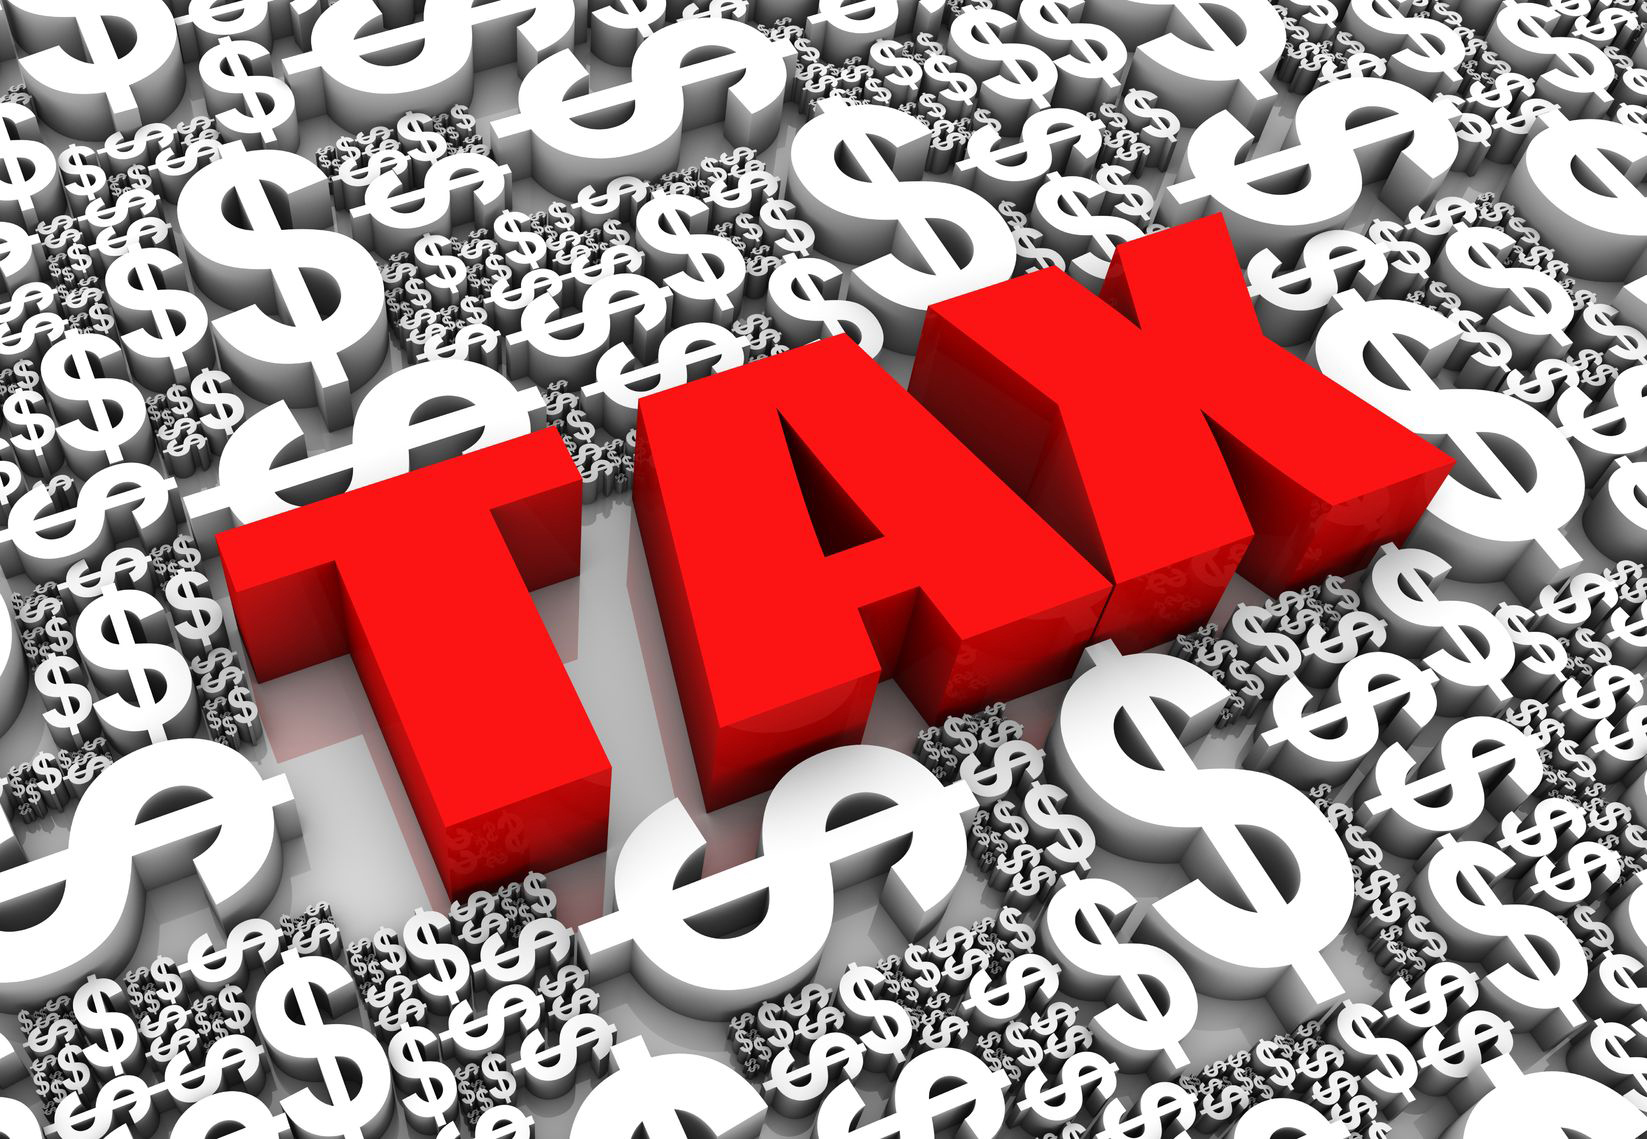 Watson Based mostly Tax Brokers Coming With Straightforward Options For The Taxes